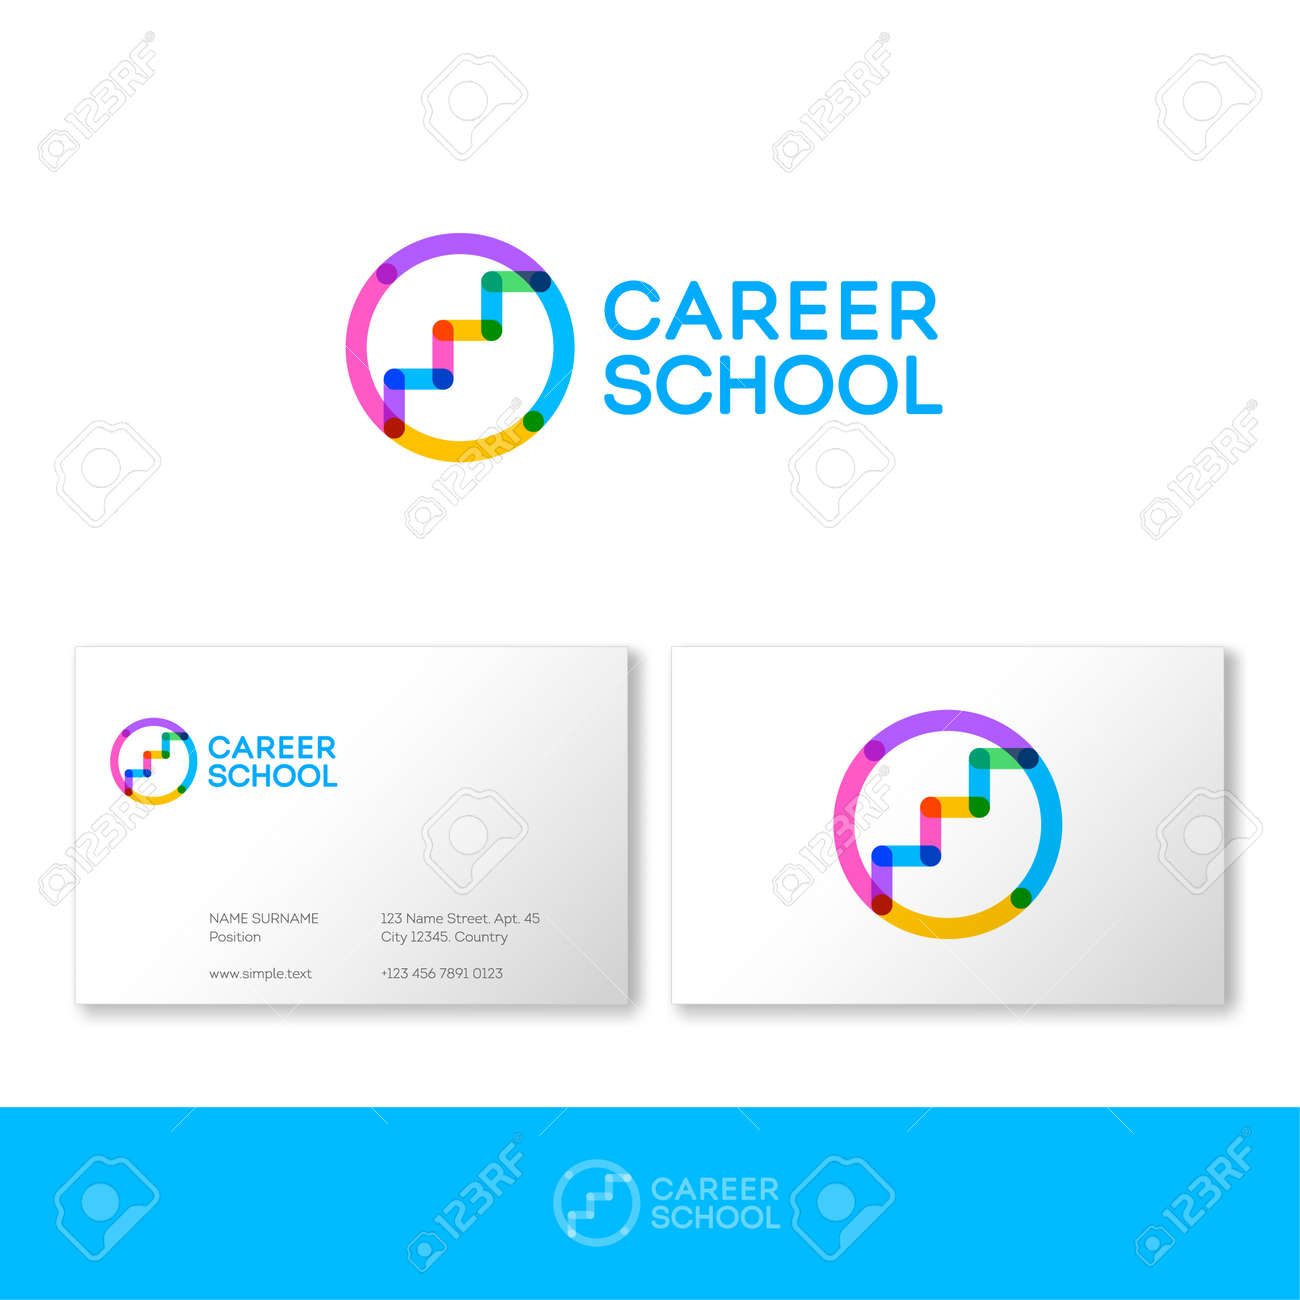 Career school logo.HR logo. Career services logo. Stairs up on circle consist of transparent elements. Human resources management. - 168025200